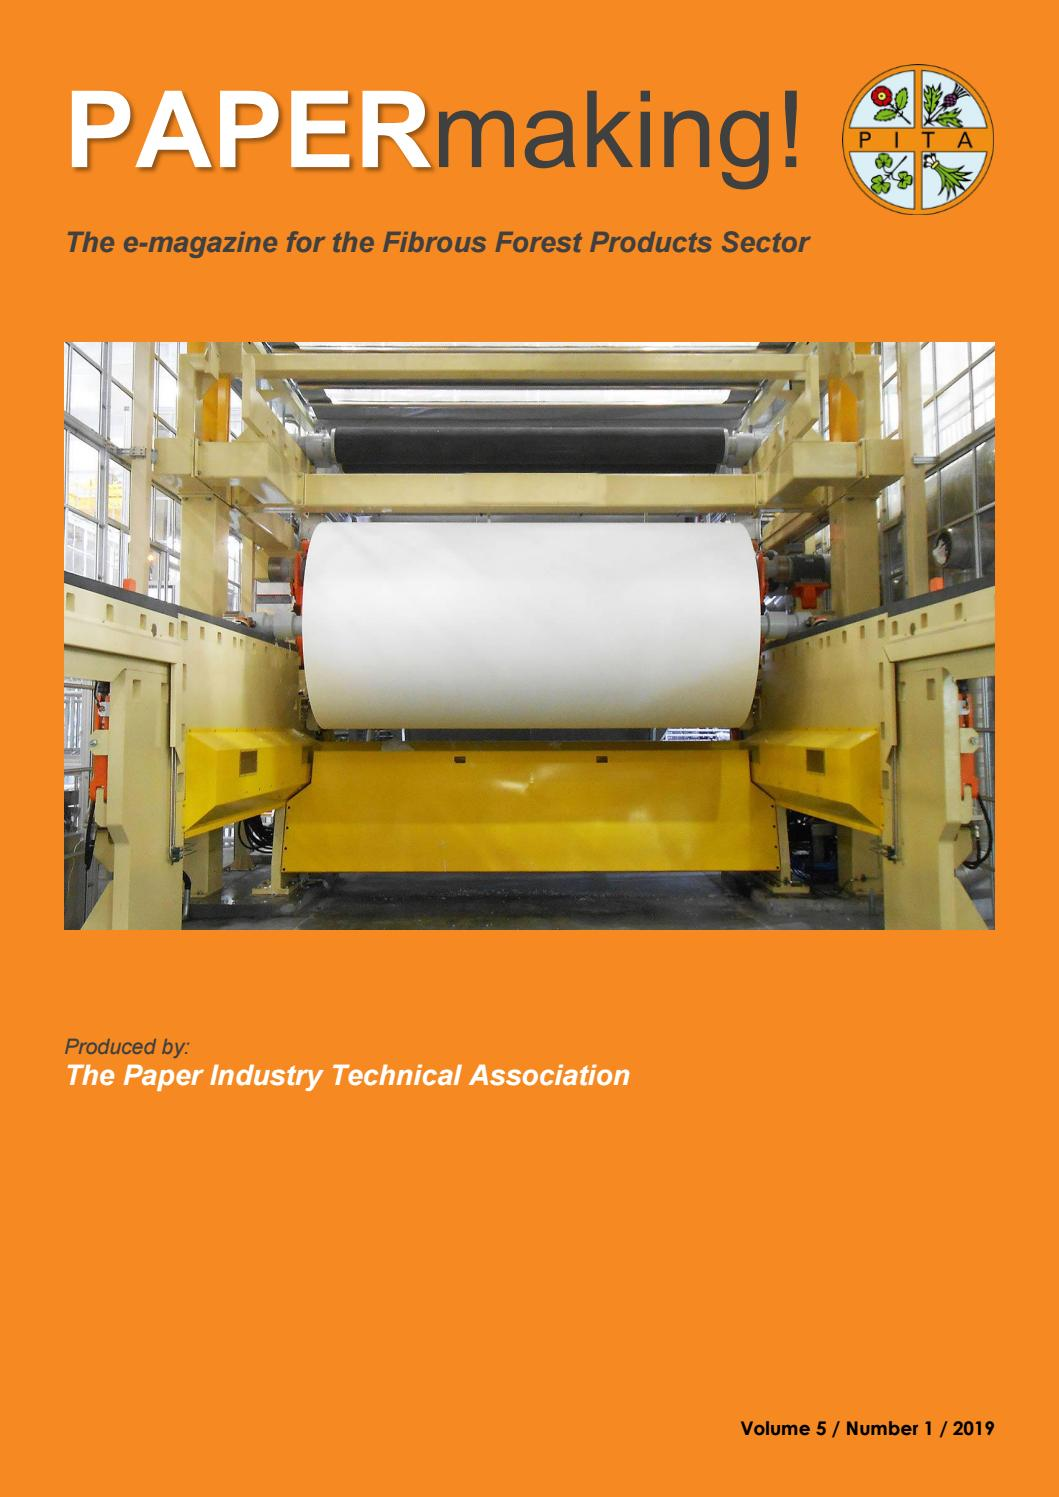 Papermaking Vol 5 No 1 2019 By Pita Co Uk Issuu